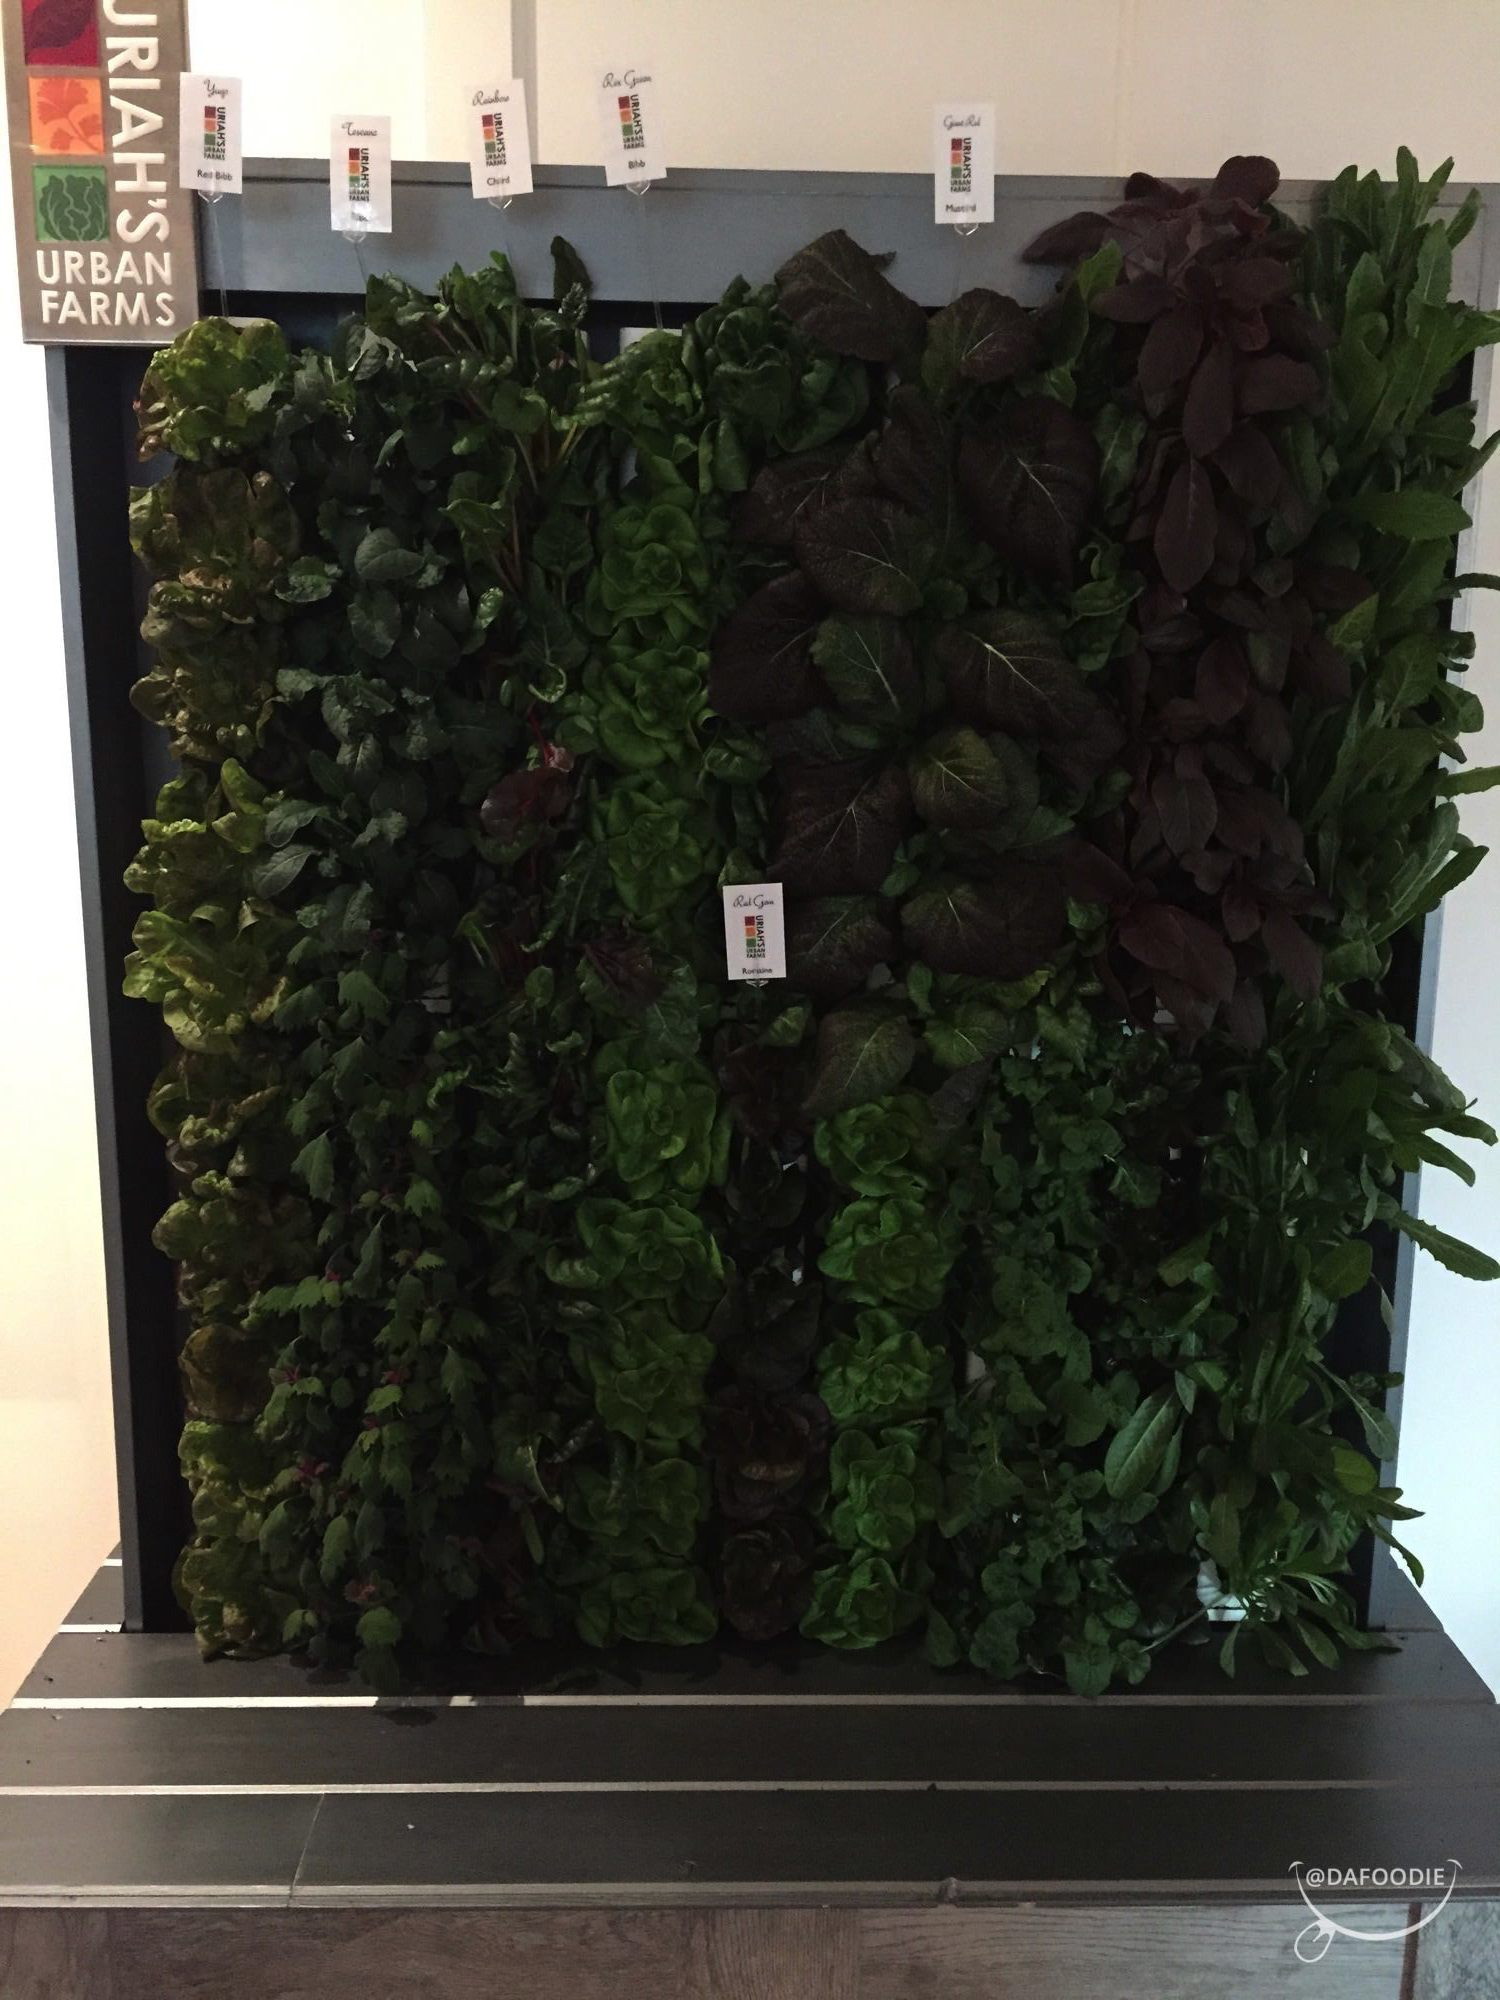 The Herb structure inside the restaurant.